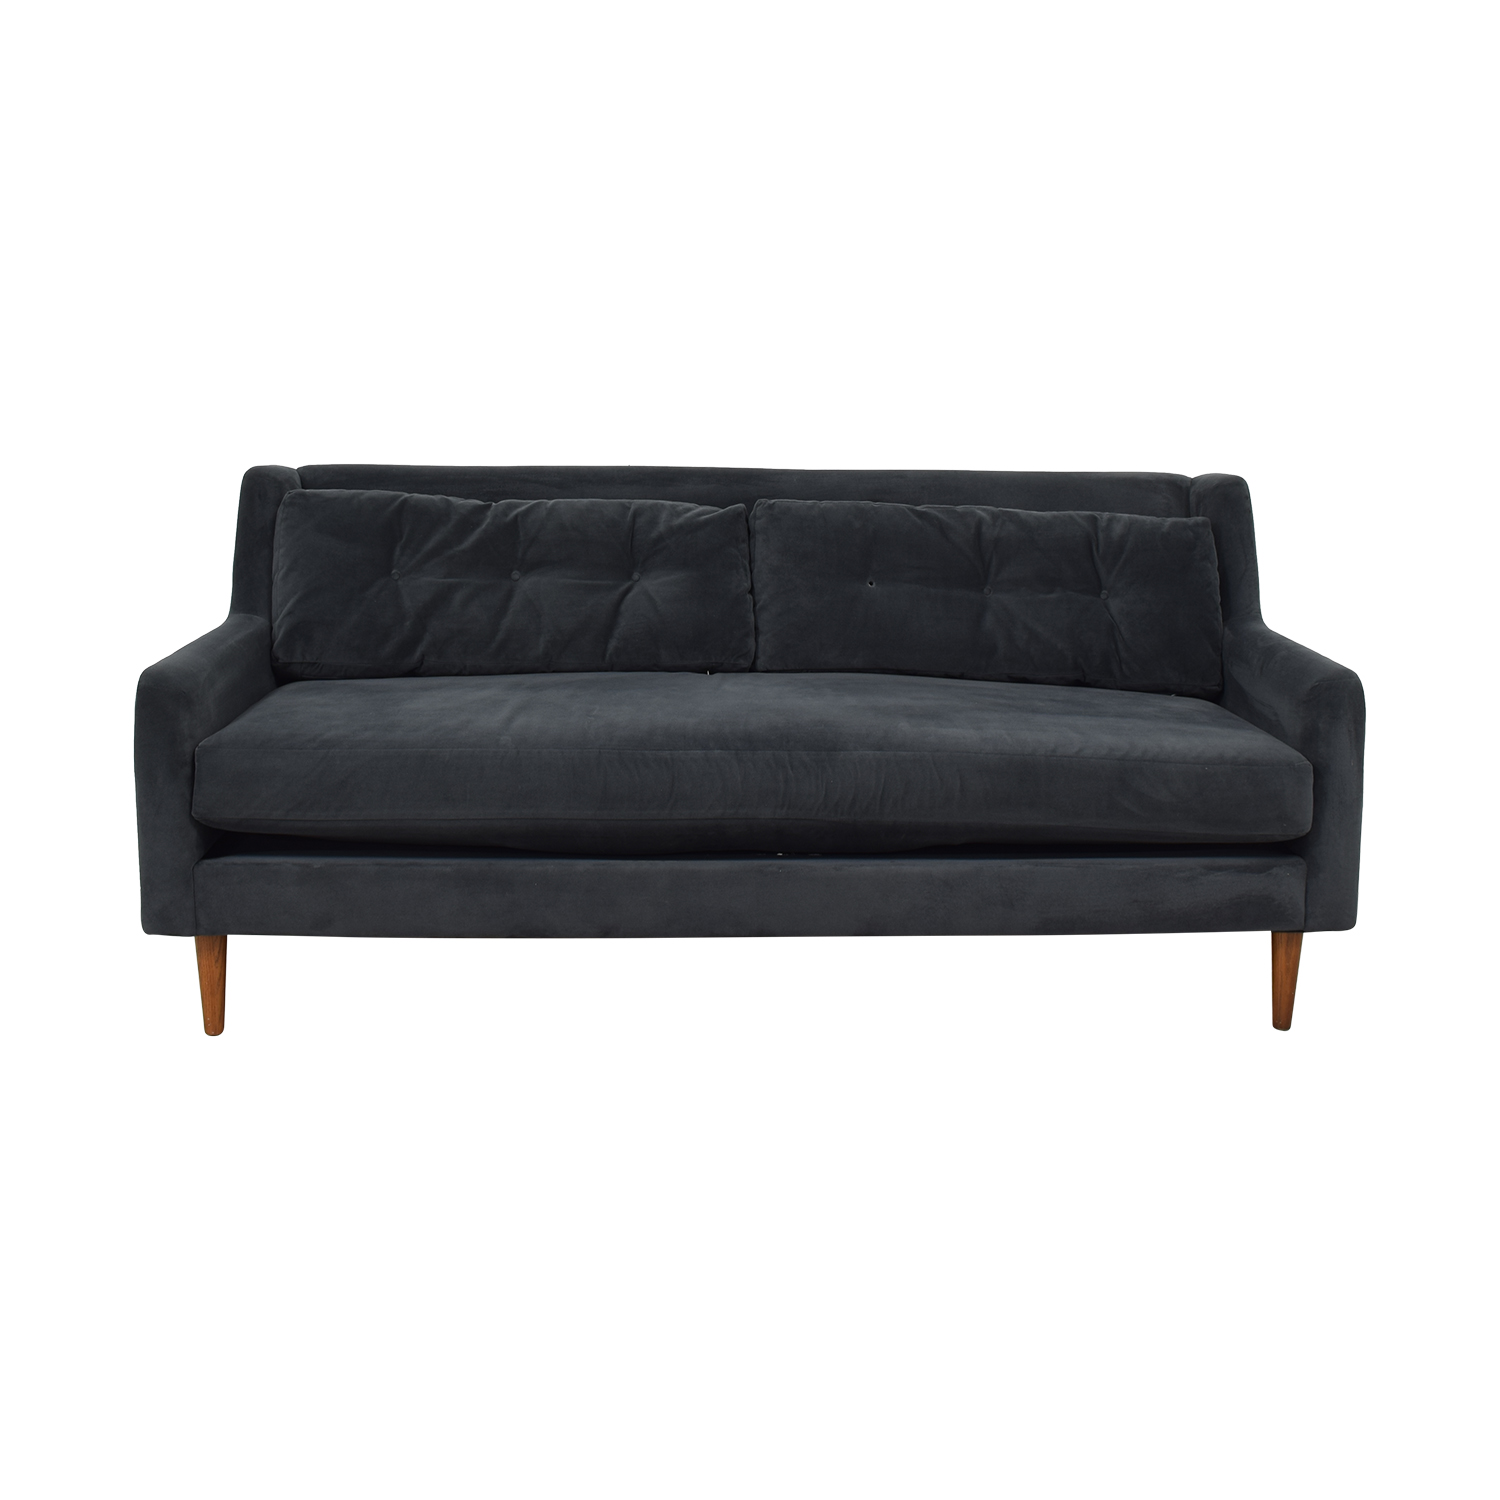 West Elm West Elm Crosby Single Cushion Sofa nyc